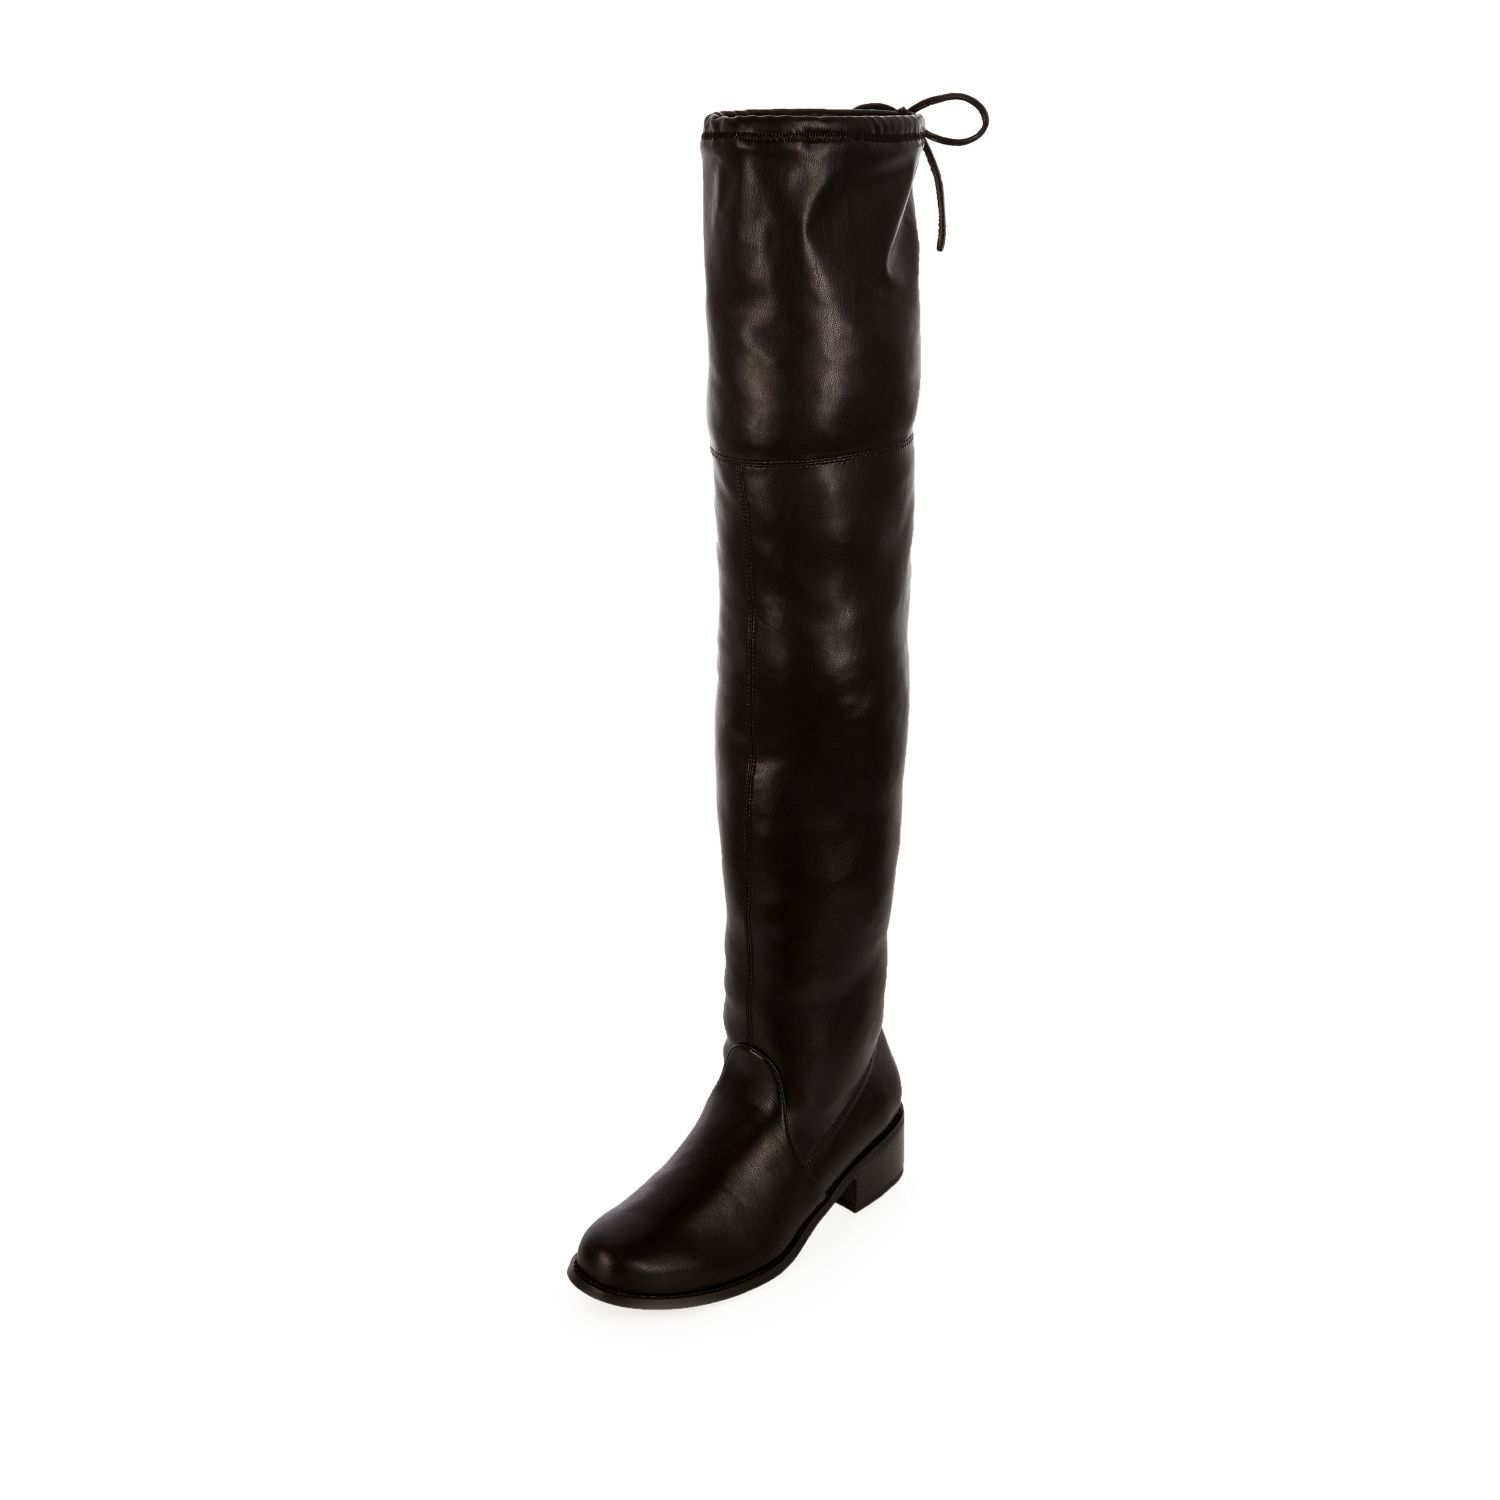 3032b273ed7e River island Black Over The Knee Boots in Black